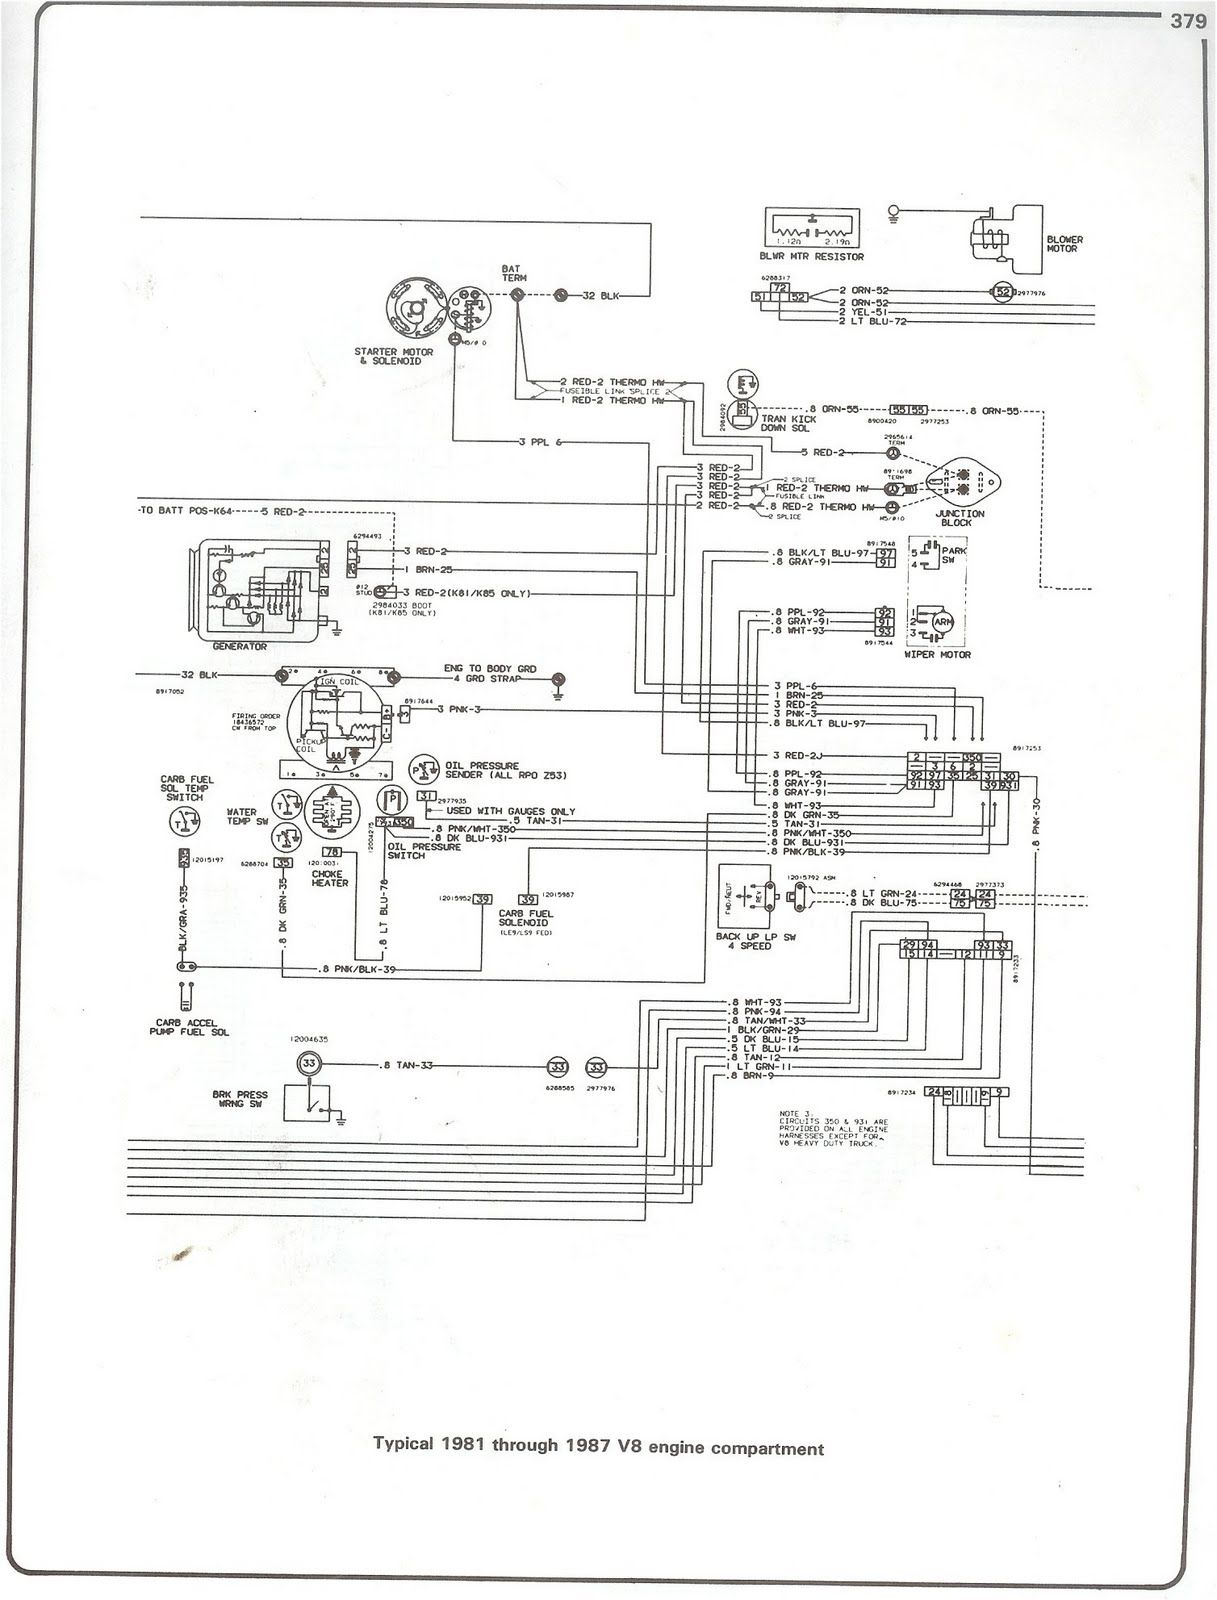 1989 Chevy Silverado Engine Diagram